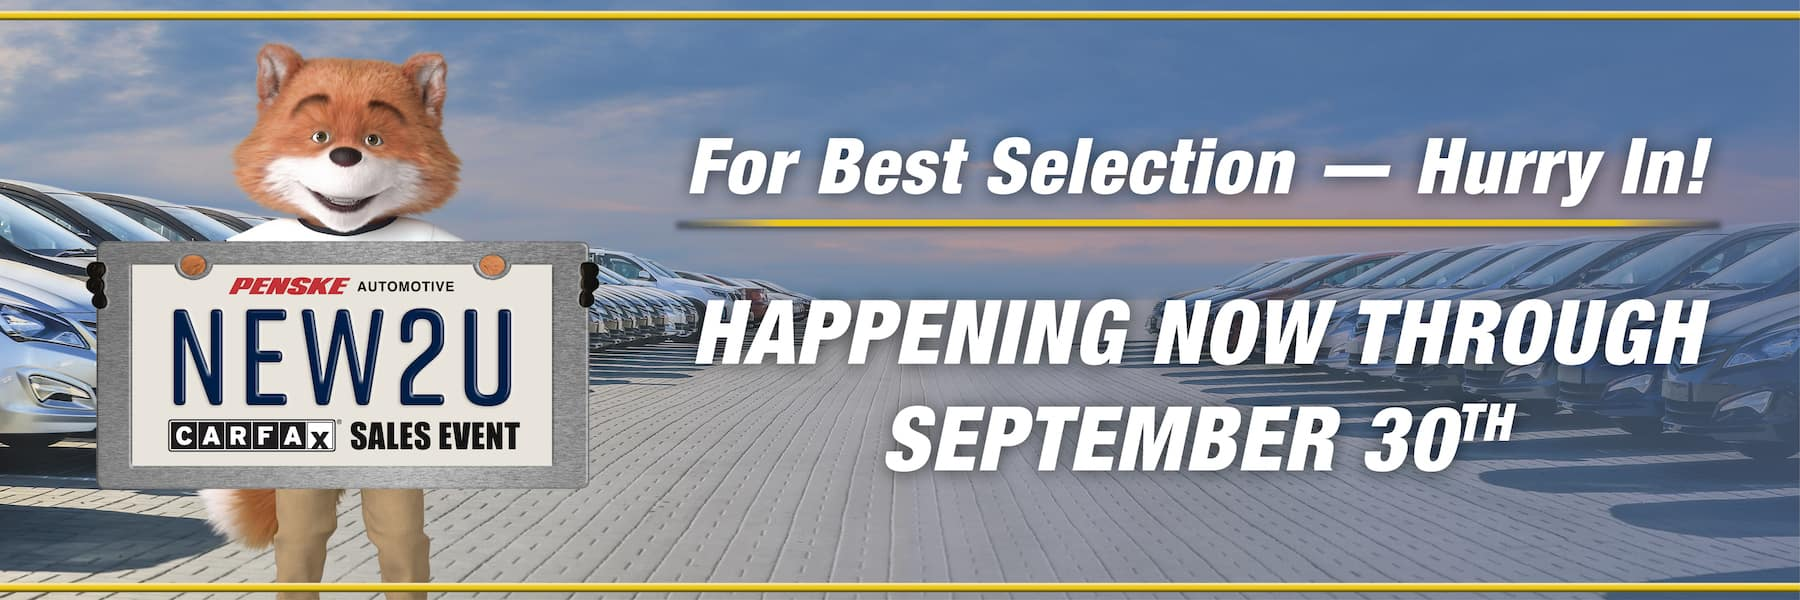 New To You Sales Event - Happening Now Through September 30!